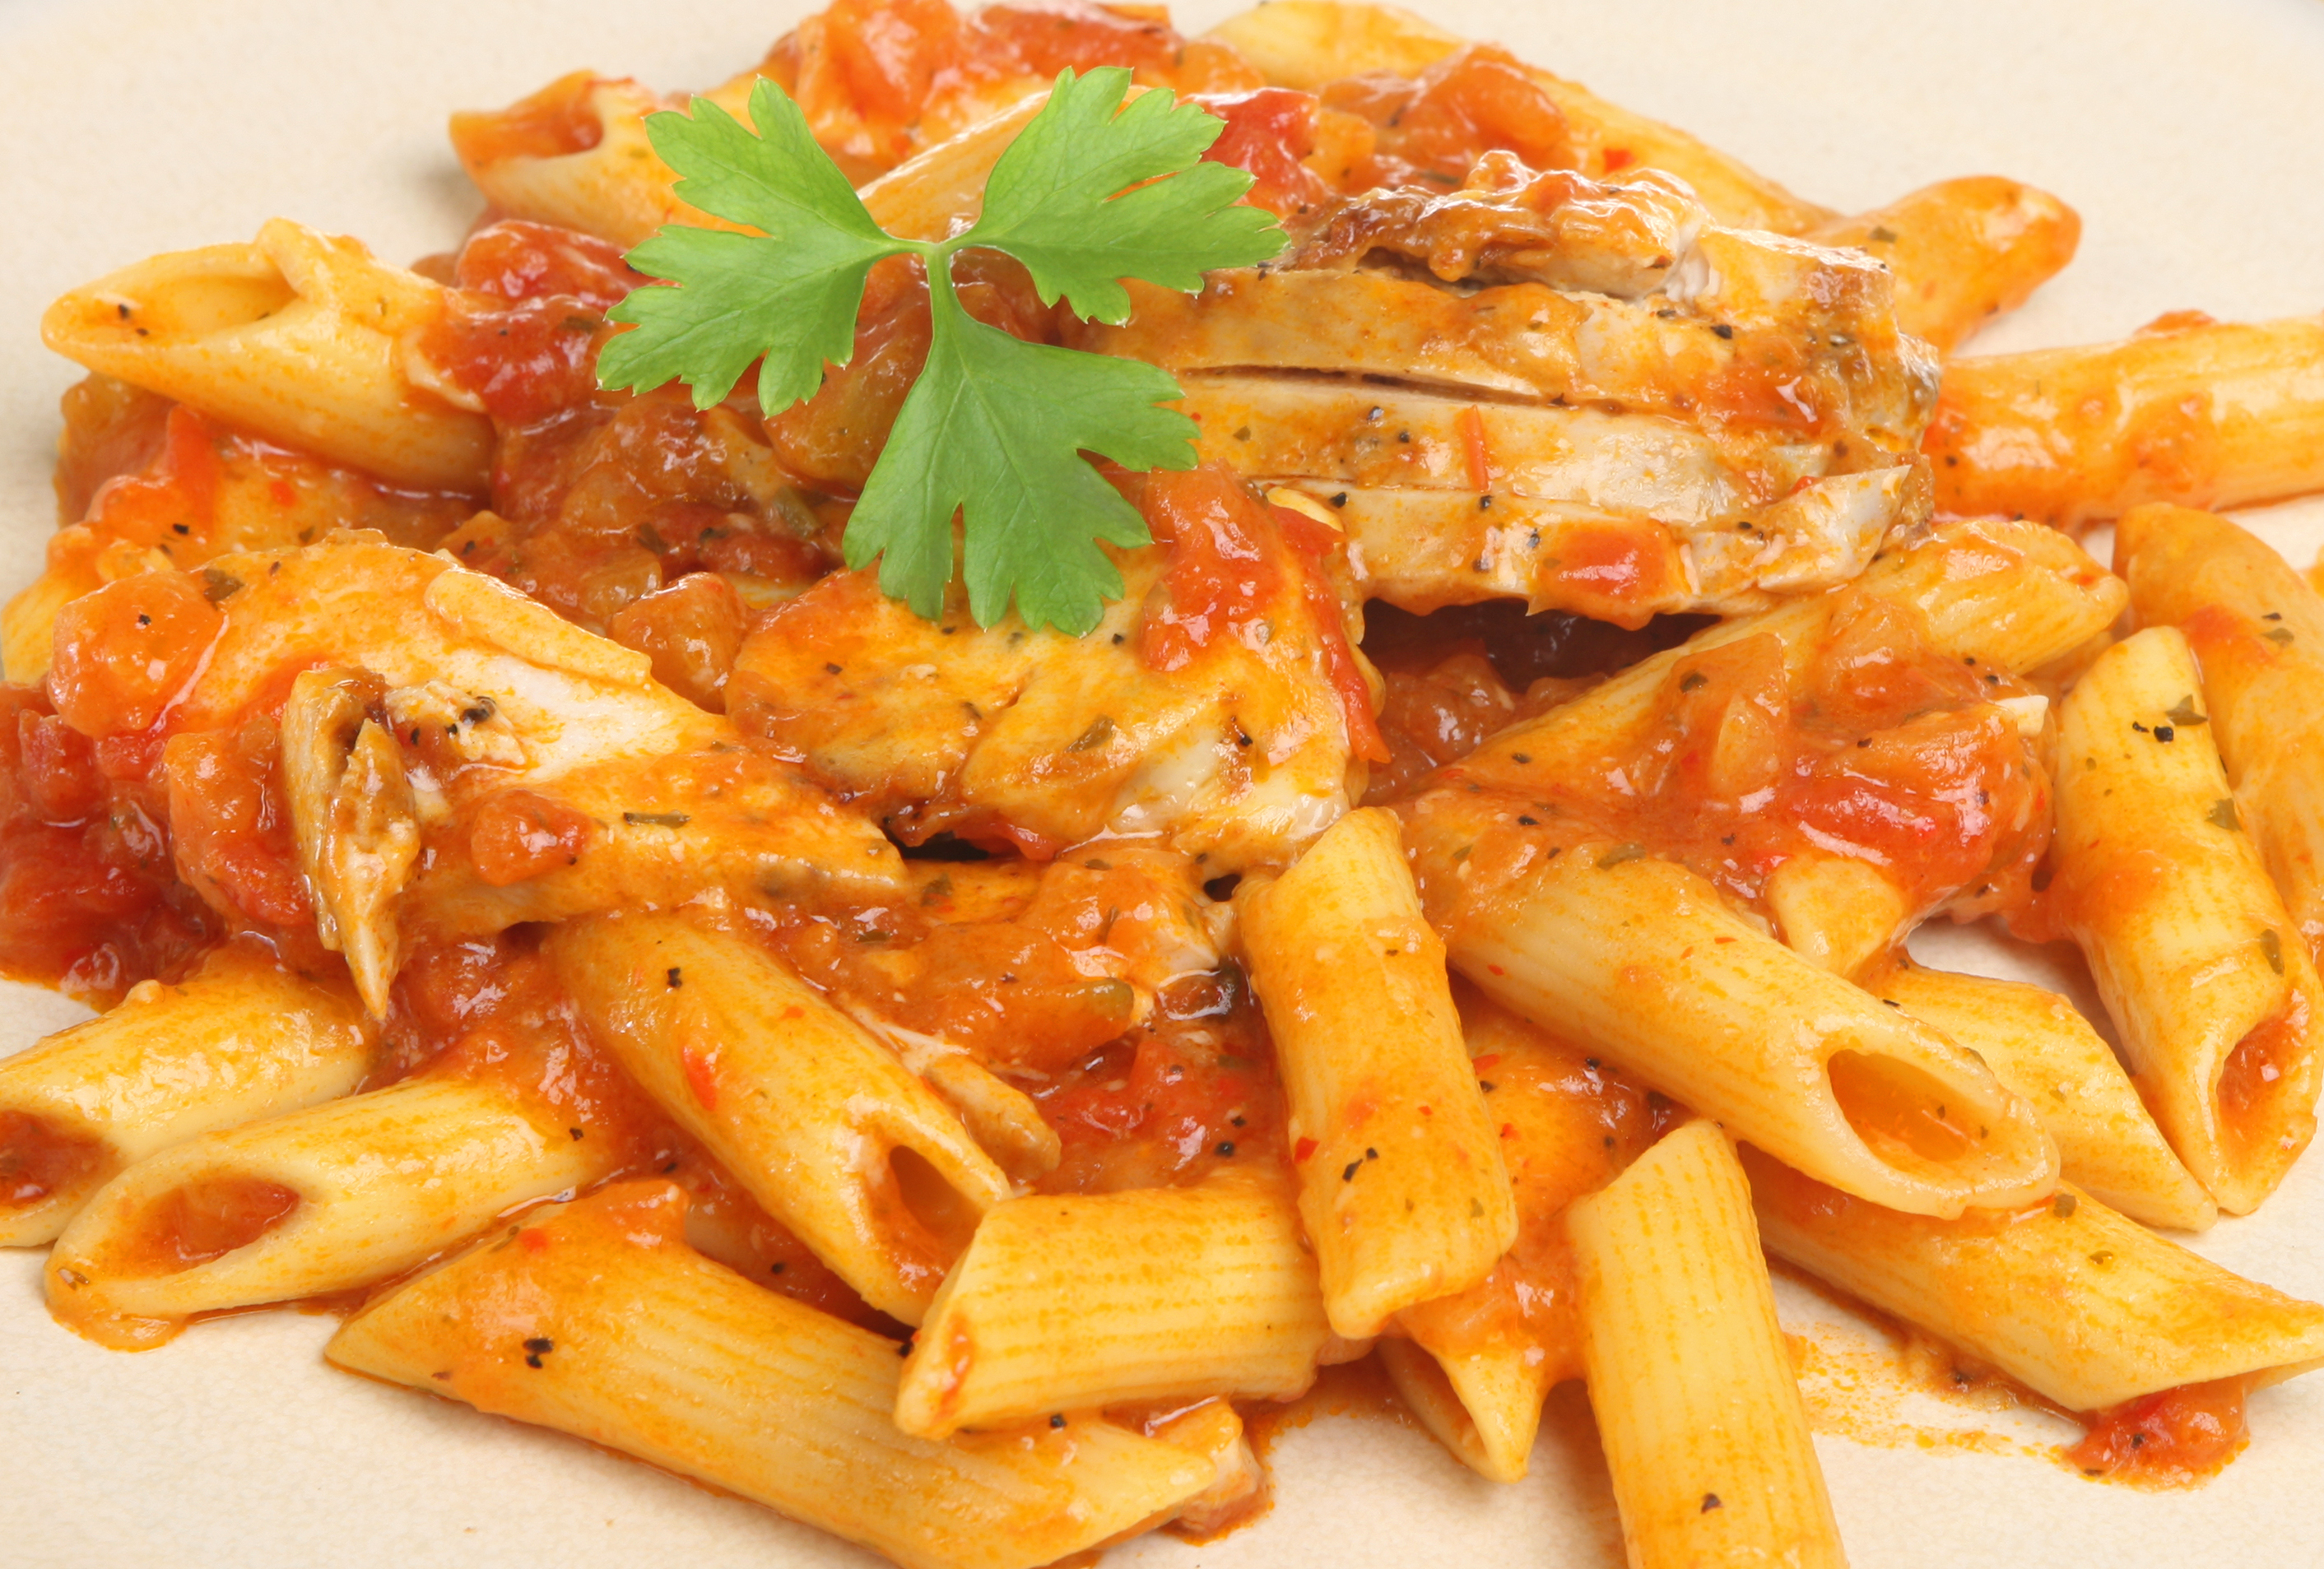 Penne with chicken and red sauce